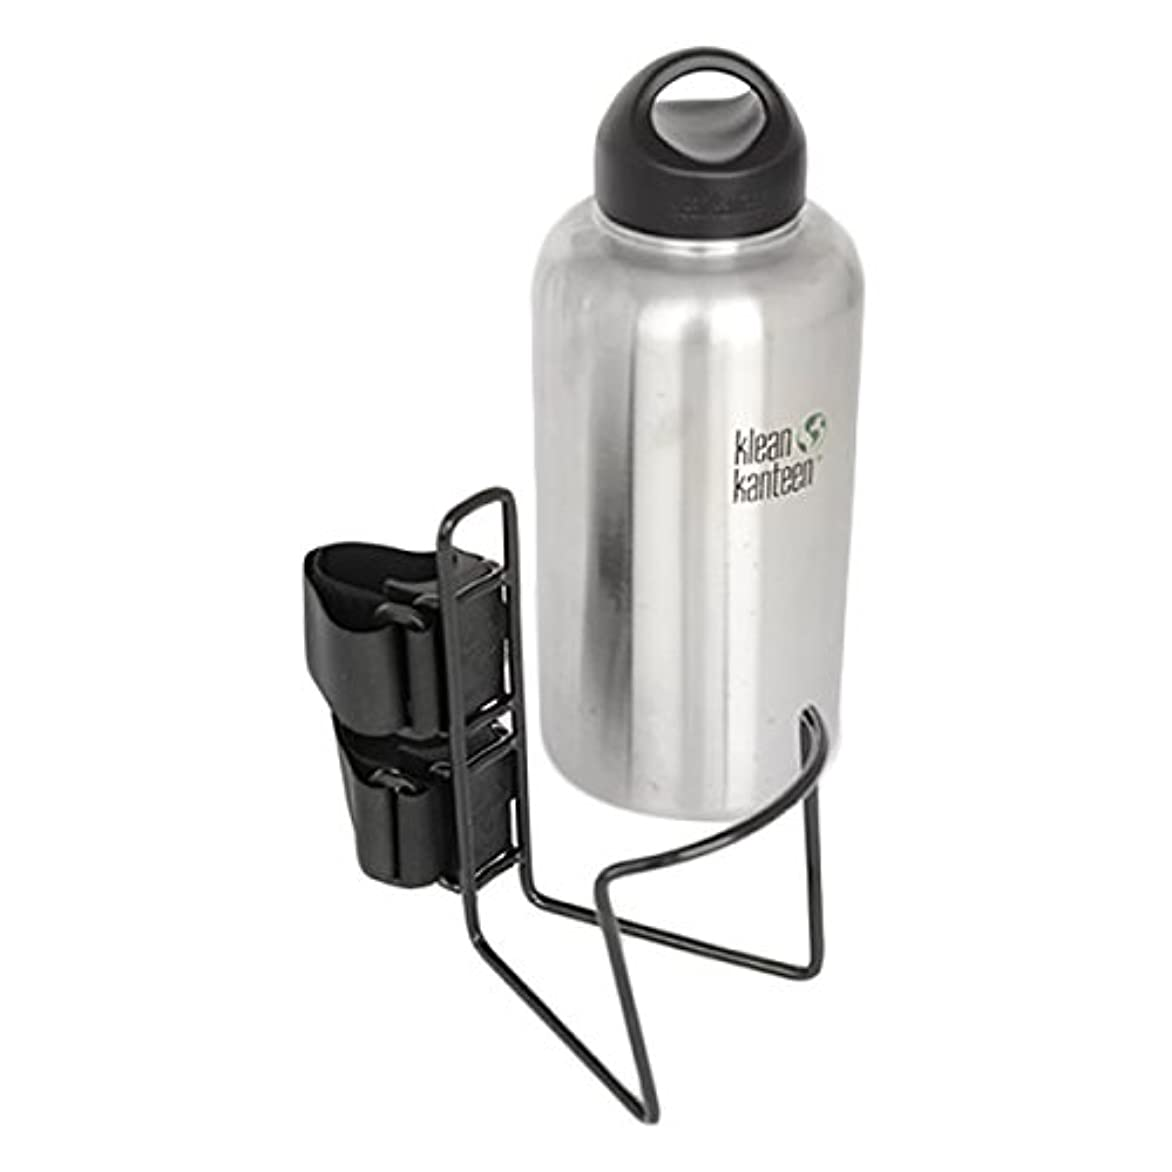 余分なマニュアル注目すべきTwo Fish QR India Vinyl for Hydro Flask Bottle Cage, 64-Ounce, Black by TwoFish